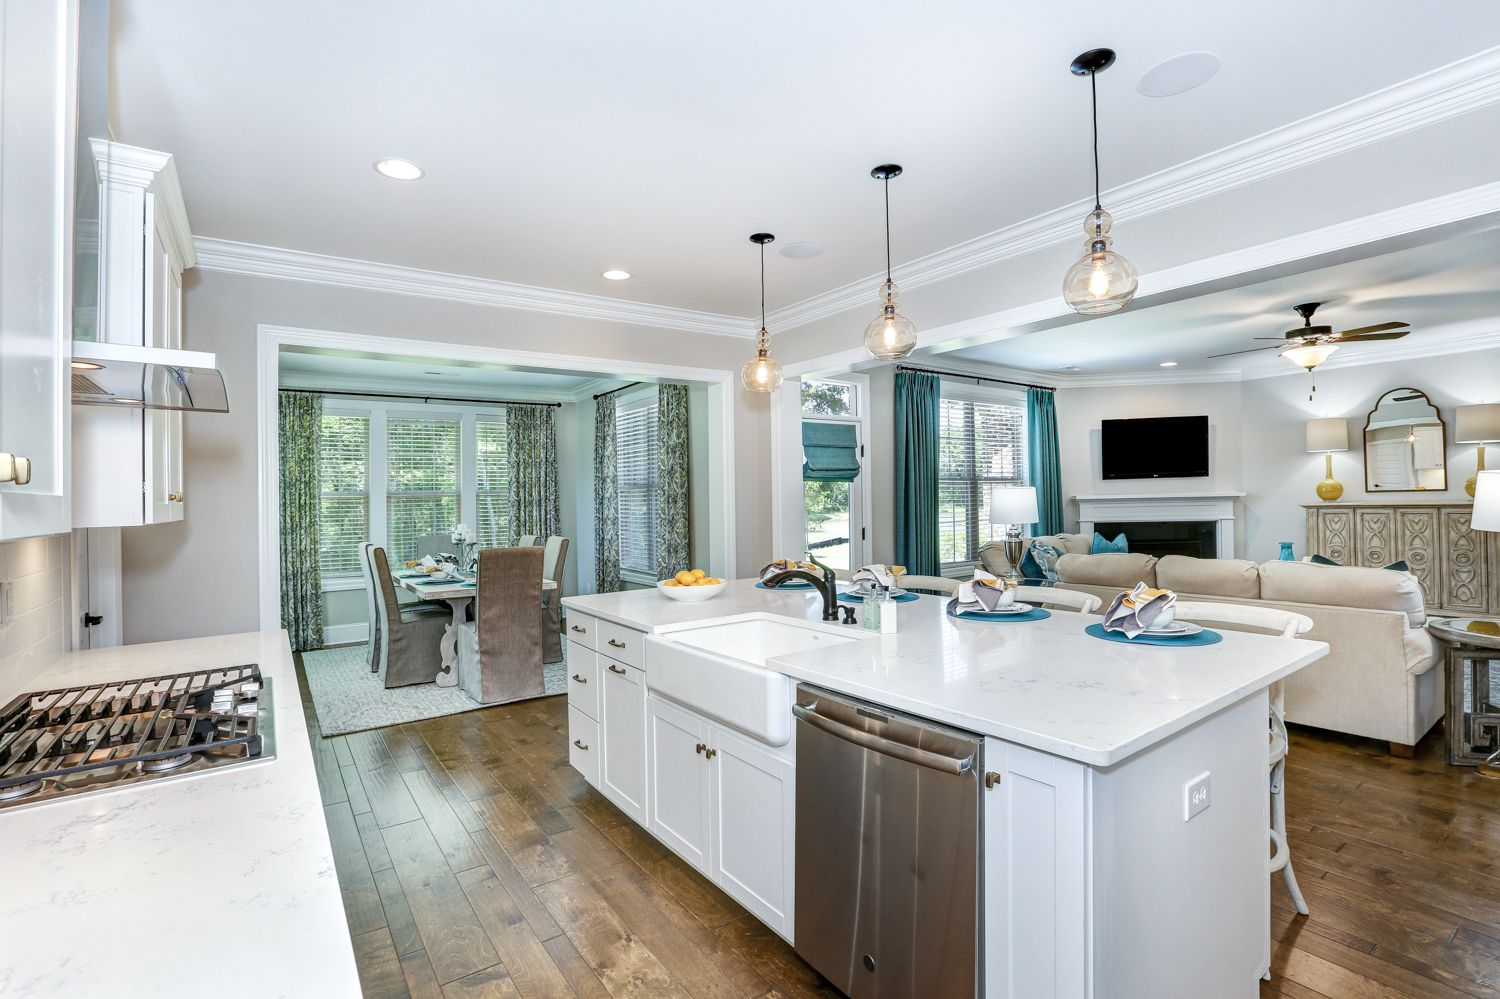 Kitchen featured in The Bridges II By Goodall Homes in Huntsville, AL